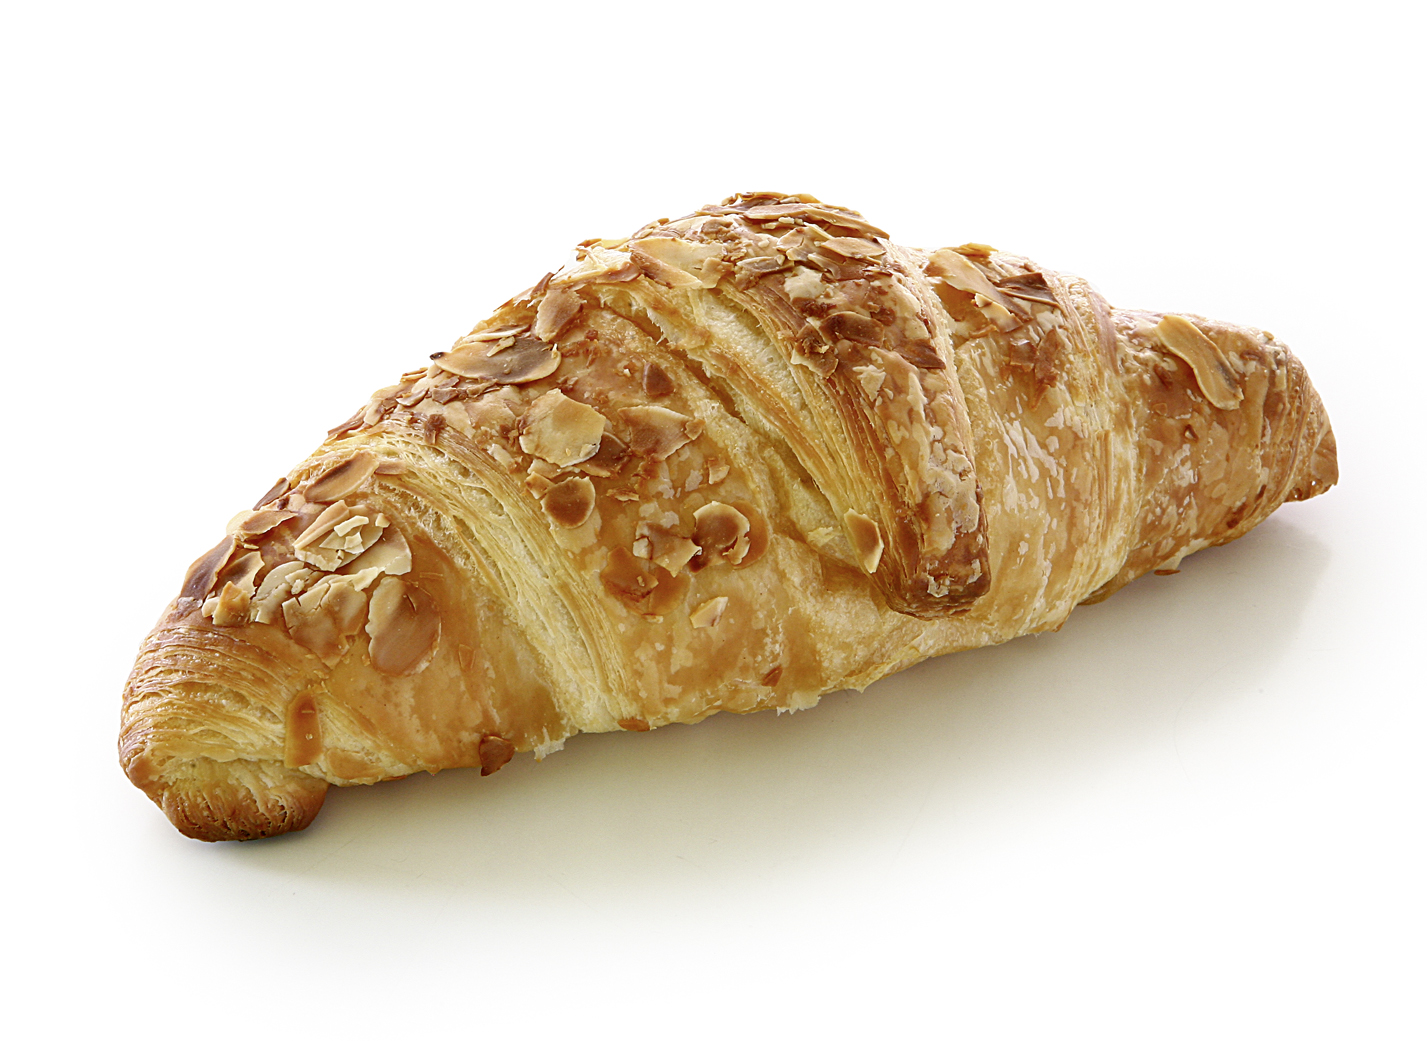 Butter-Croissant with Marzipan Filling - Danish pastry with 19% almonds, 16% butter and almond topping